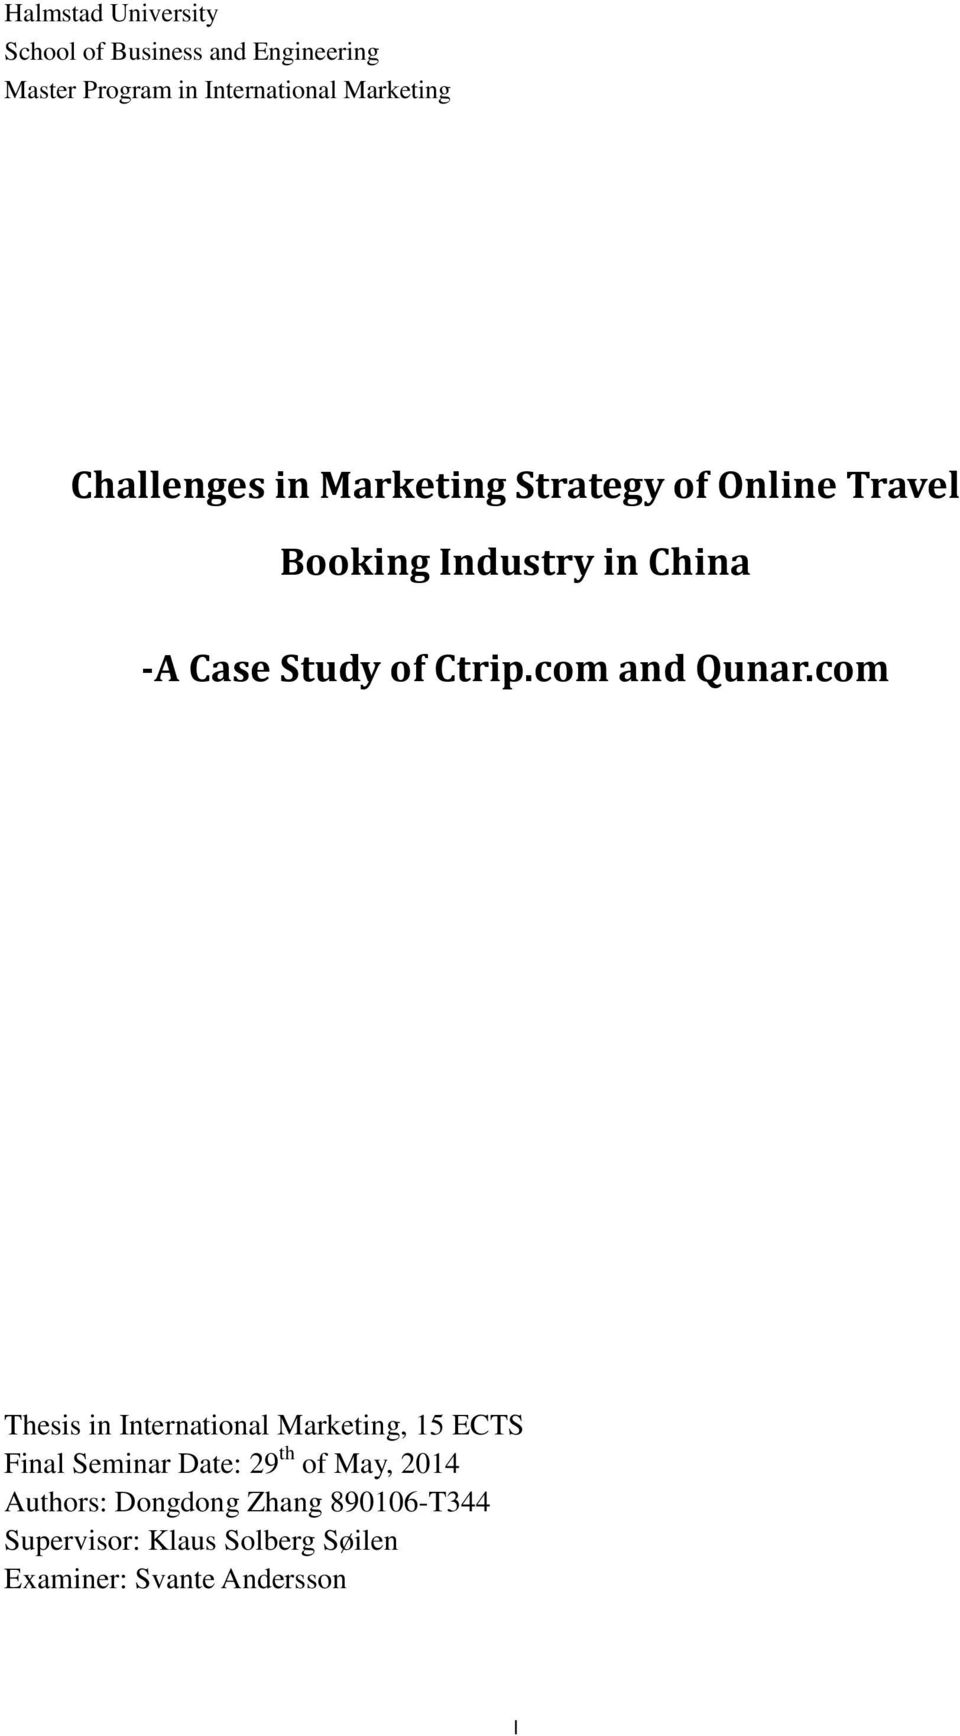 Sample of background of the study in research paper